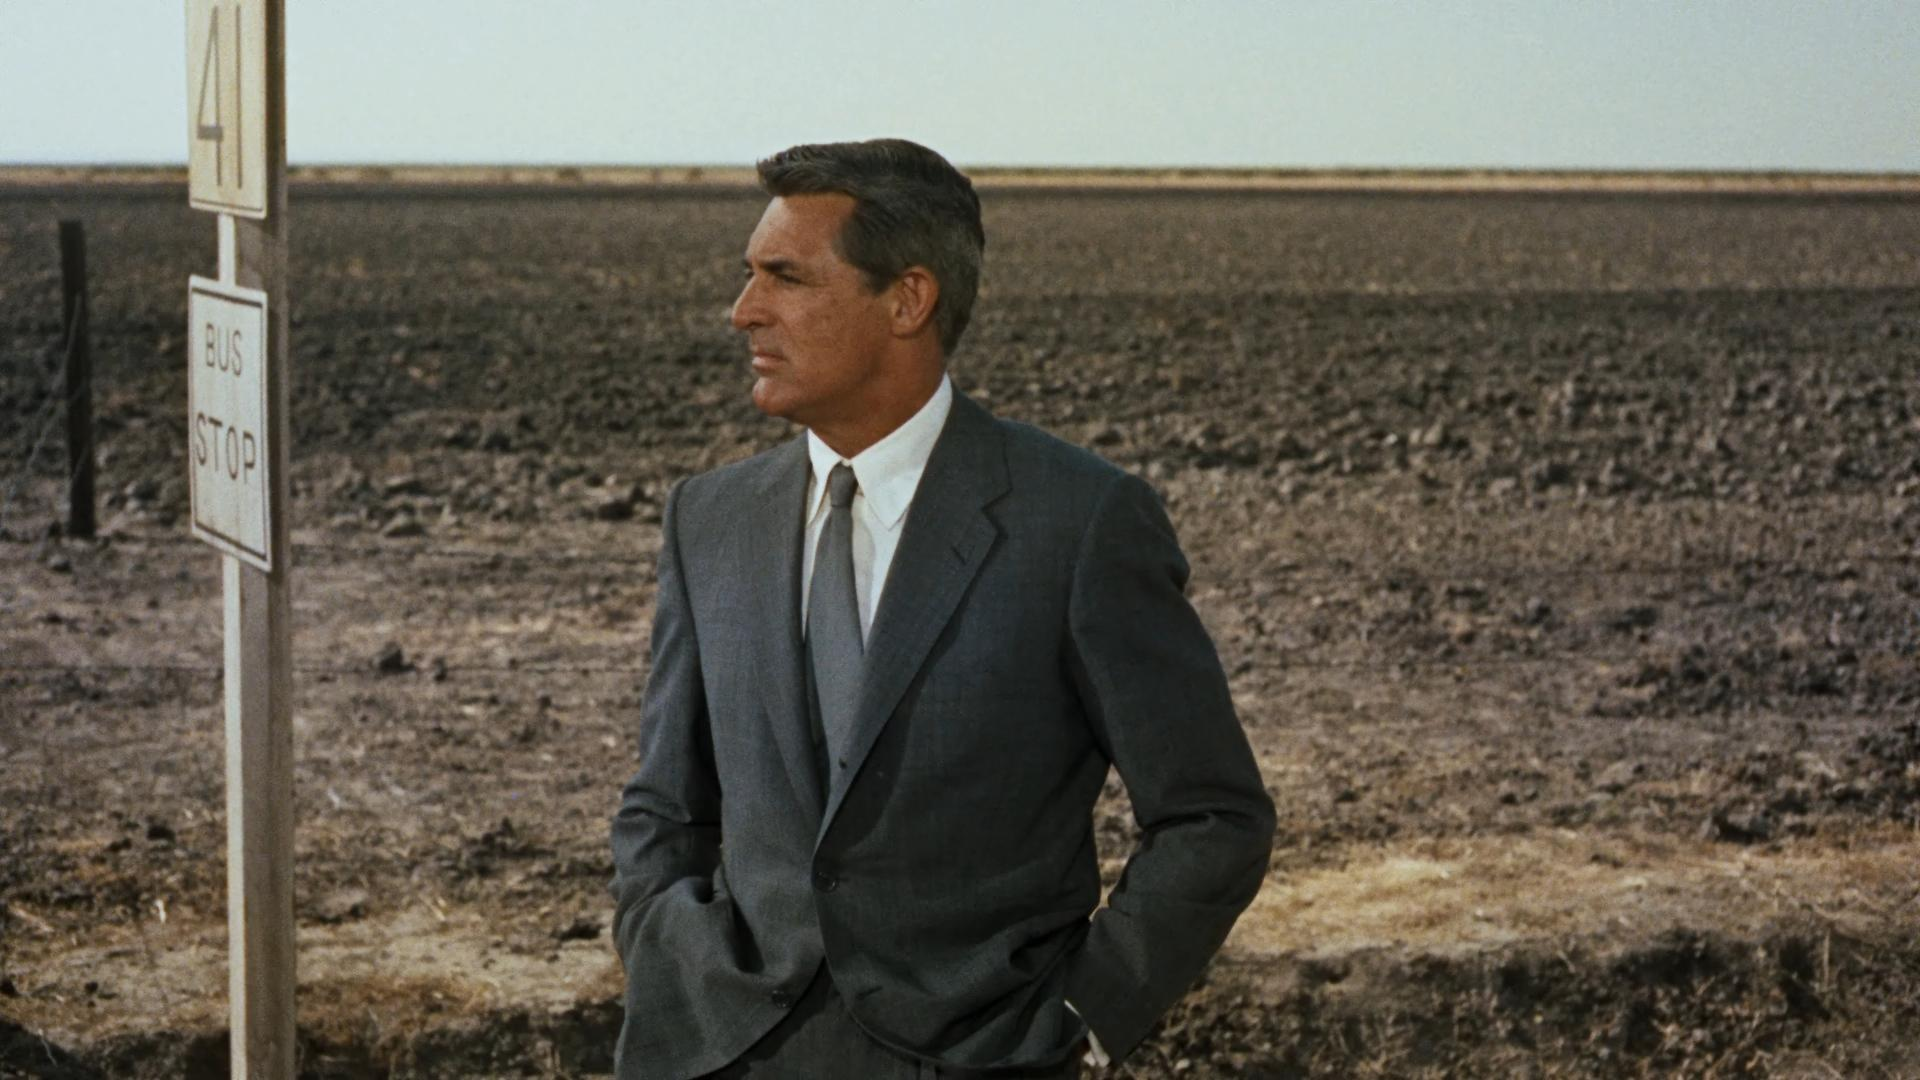 Download wallpapers 1920x1080 north by northwest, 1959, roger